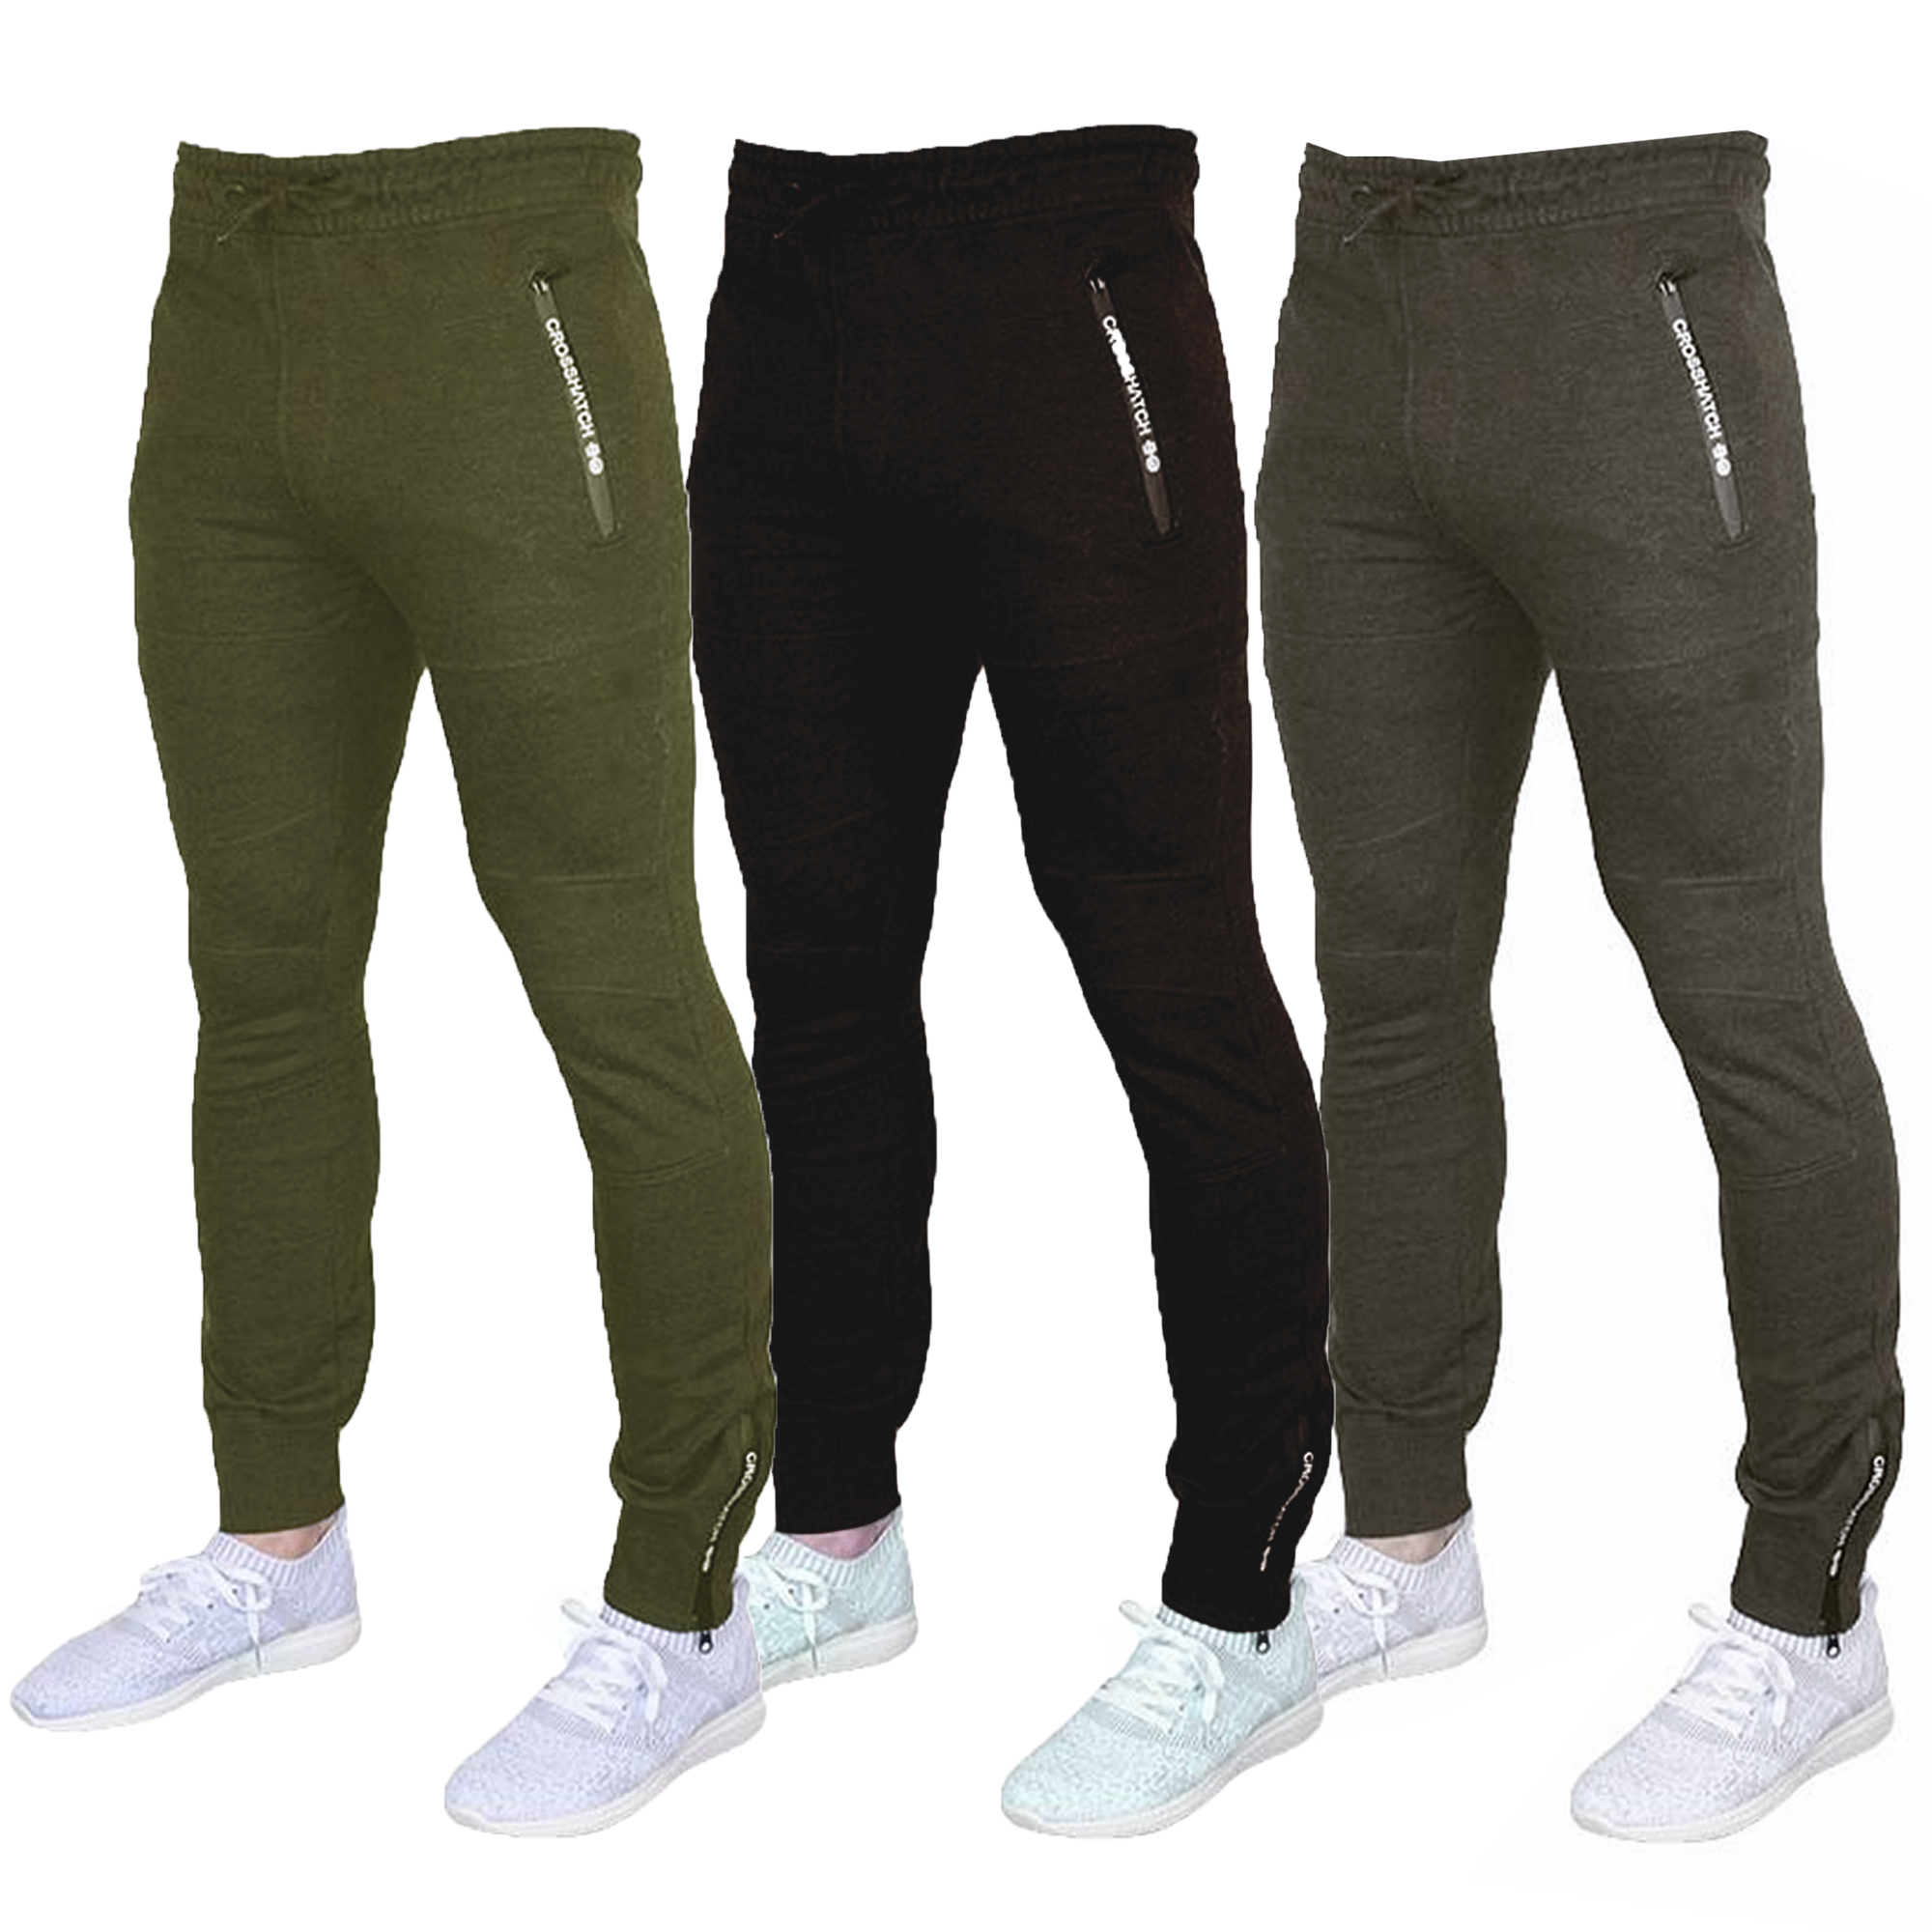 Mens-Bottoms-Crosshatch-Jogging-Pants-Cuffed-Trousers-Running-Gym-Warm-Fashion thumbnail 3